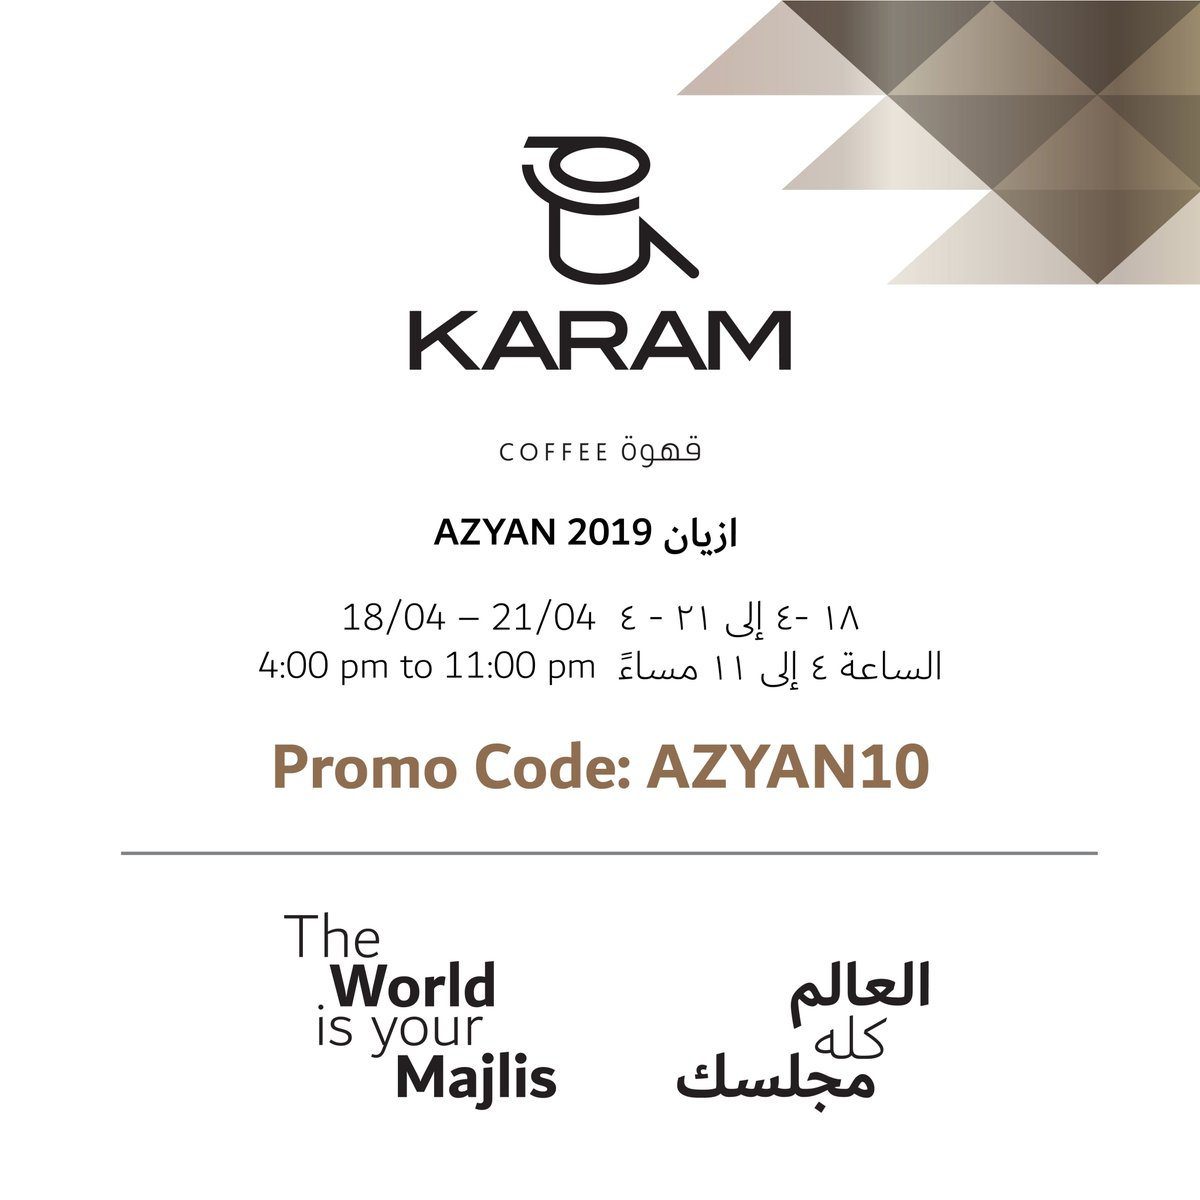 3f2896a19 Use the promo code AZYAN10 in our e-Shop to receive a 10% discount during  the exhibition.pic.twitter.com/F6JyVld2nz